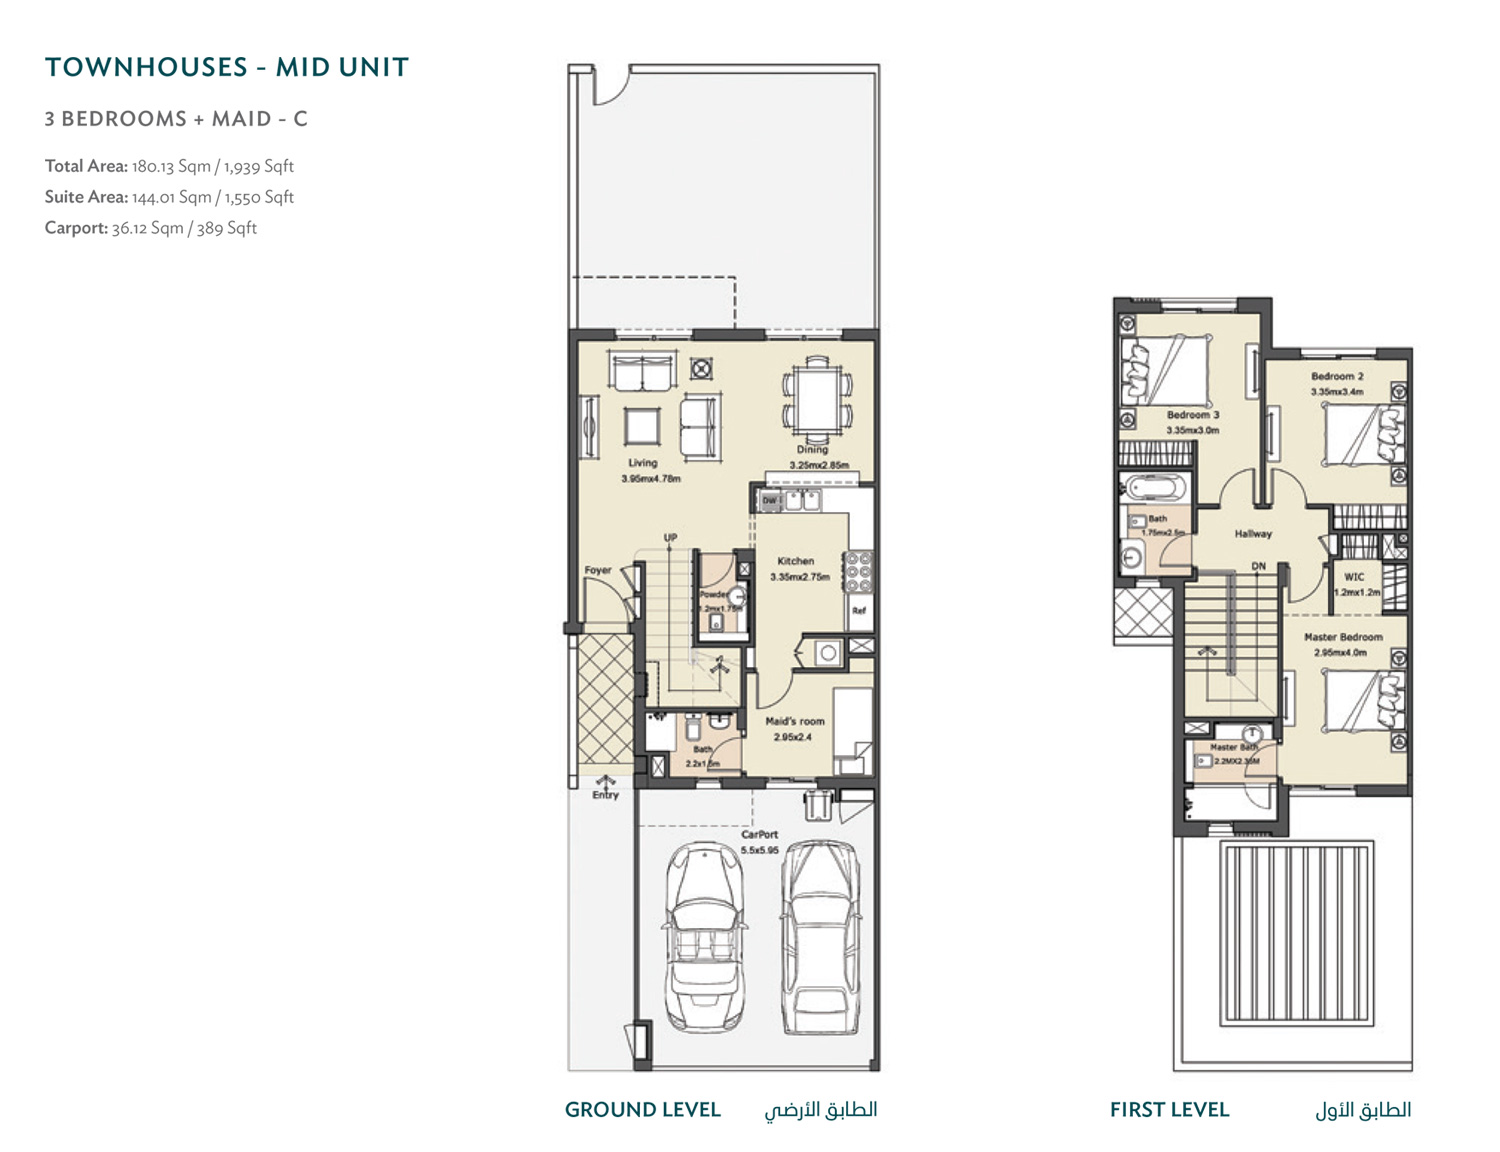 Phase 4 - 3 Bedroom - Maid - C, Size 1939  sq. ft.